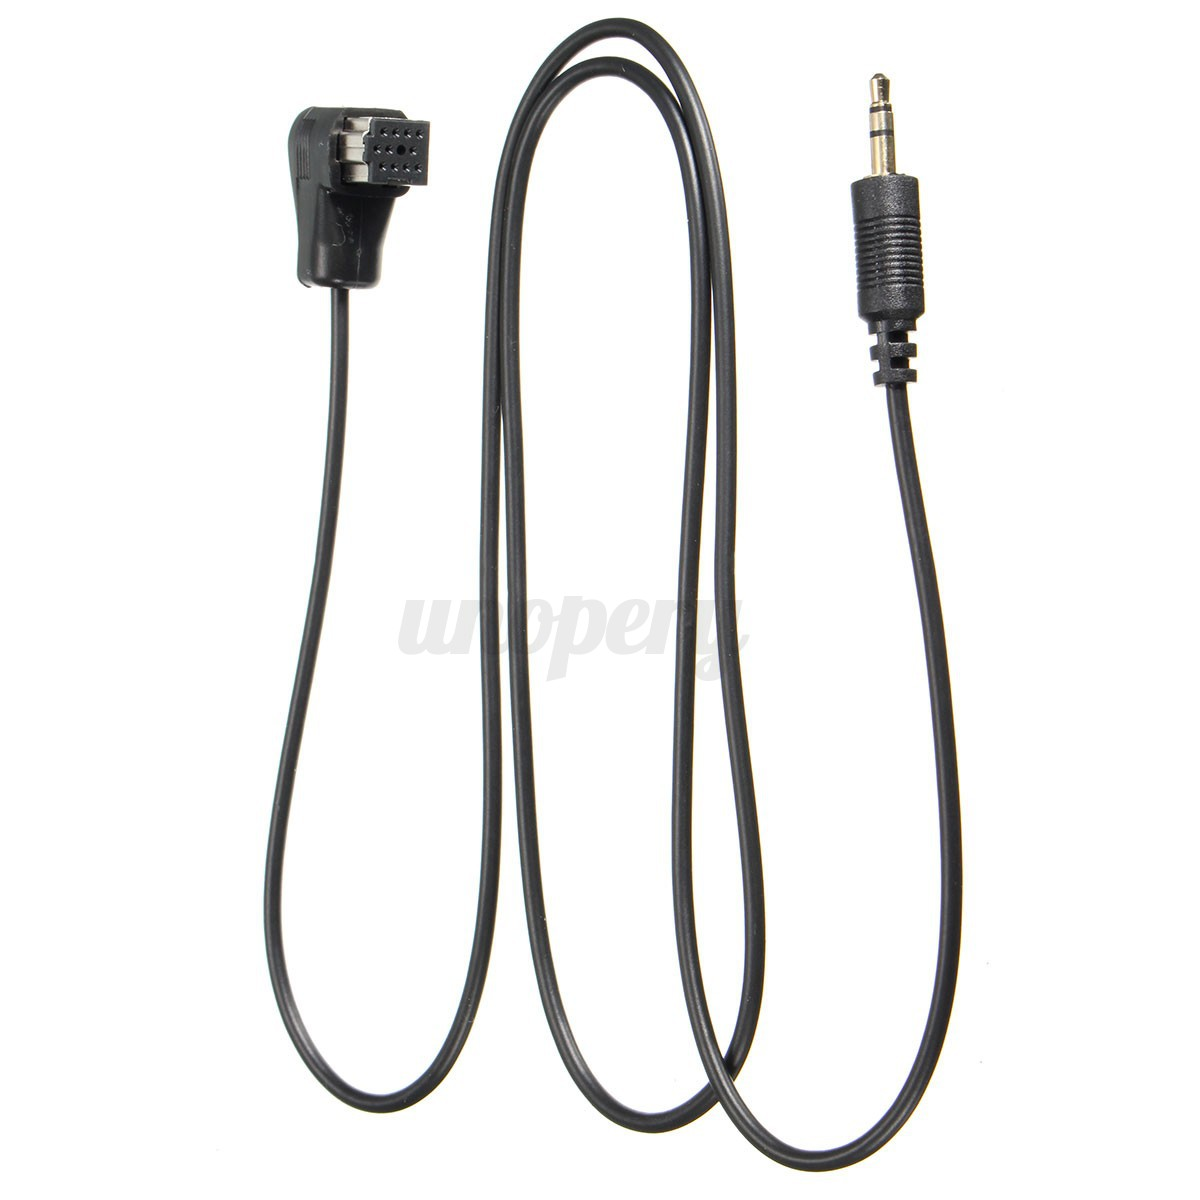 3 5mm Aux Input Cable To Car Pioneer Stereo Headunit Ip